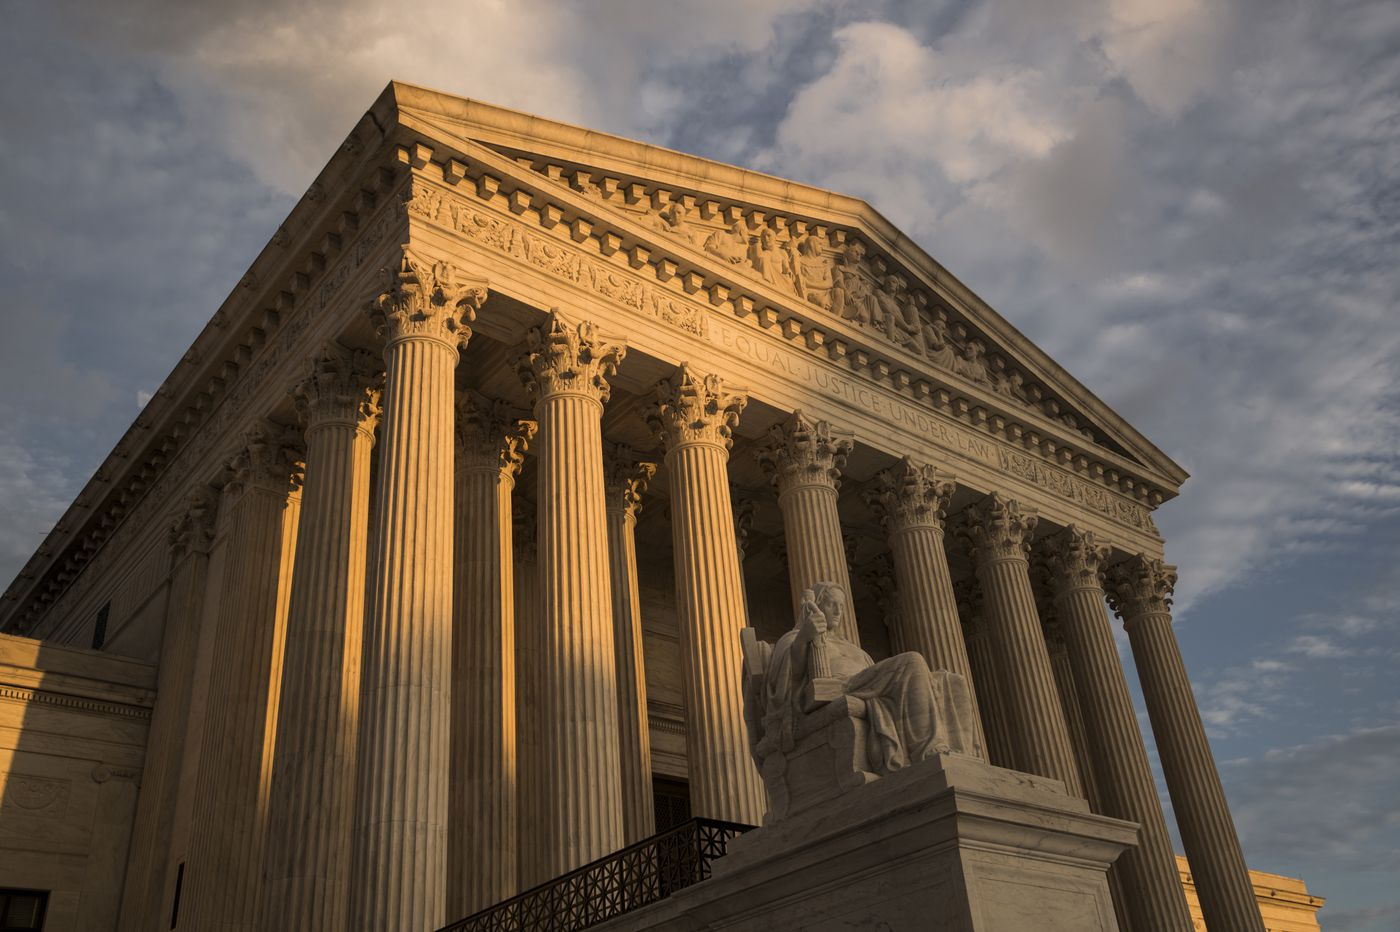 Should the size of the Supreme Court expand to change the ideological balance? | Pro/Con